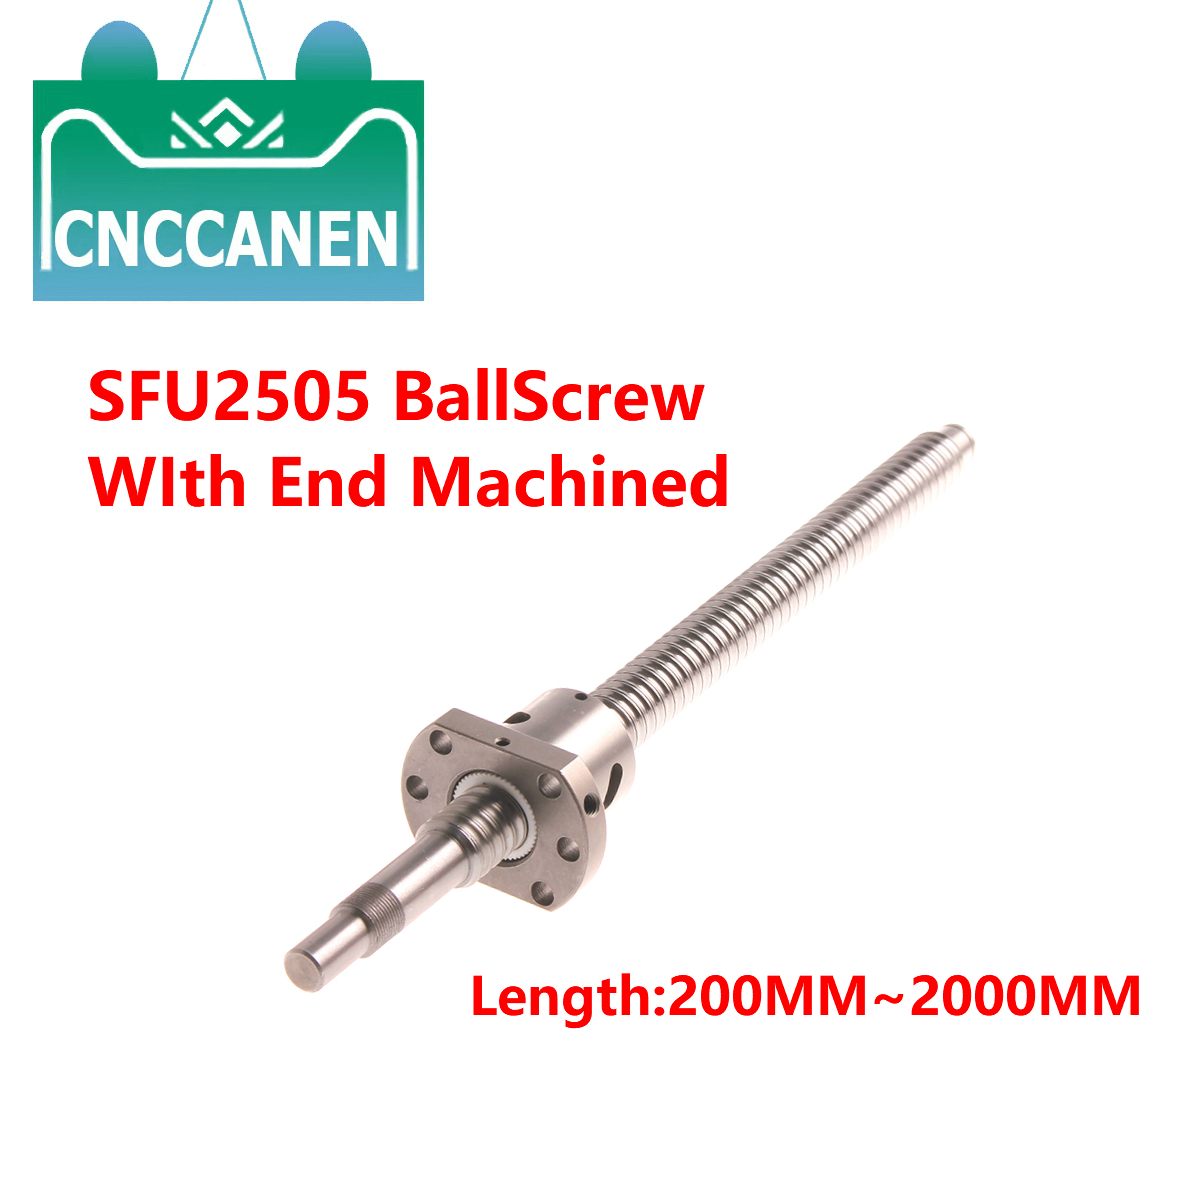 RM2505 BallScrew SFU2505-300 1000 1500 2000mm Ball Screw C7 With 2505 Flange Single Ball Nut BK/BF20 End Machined For CNC Parts